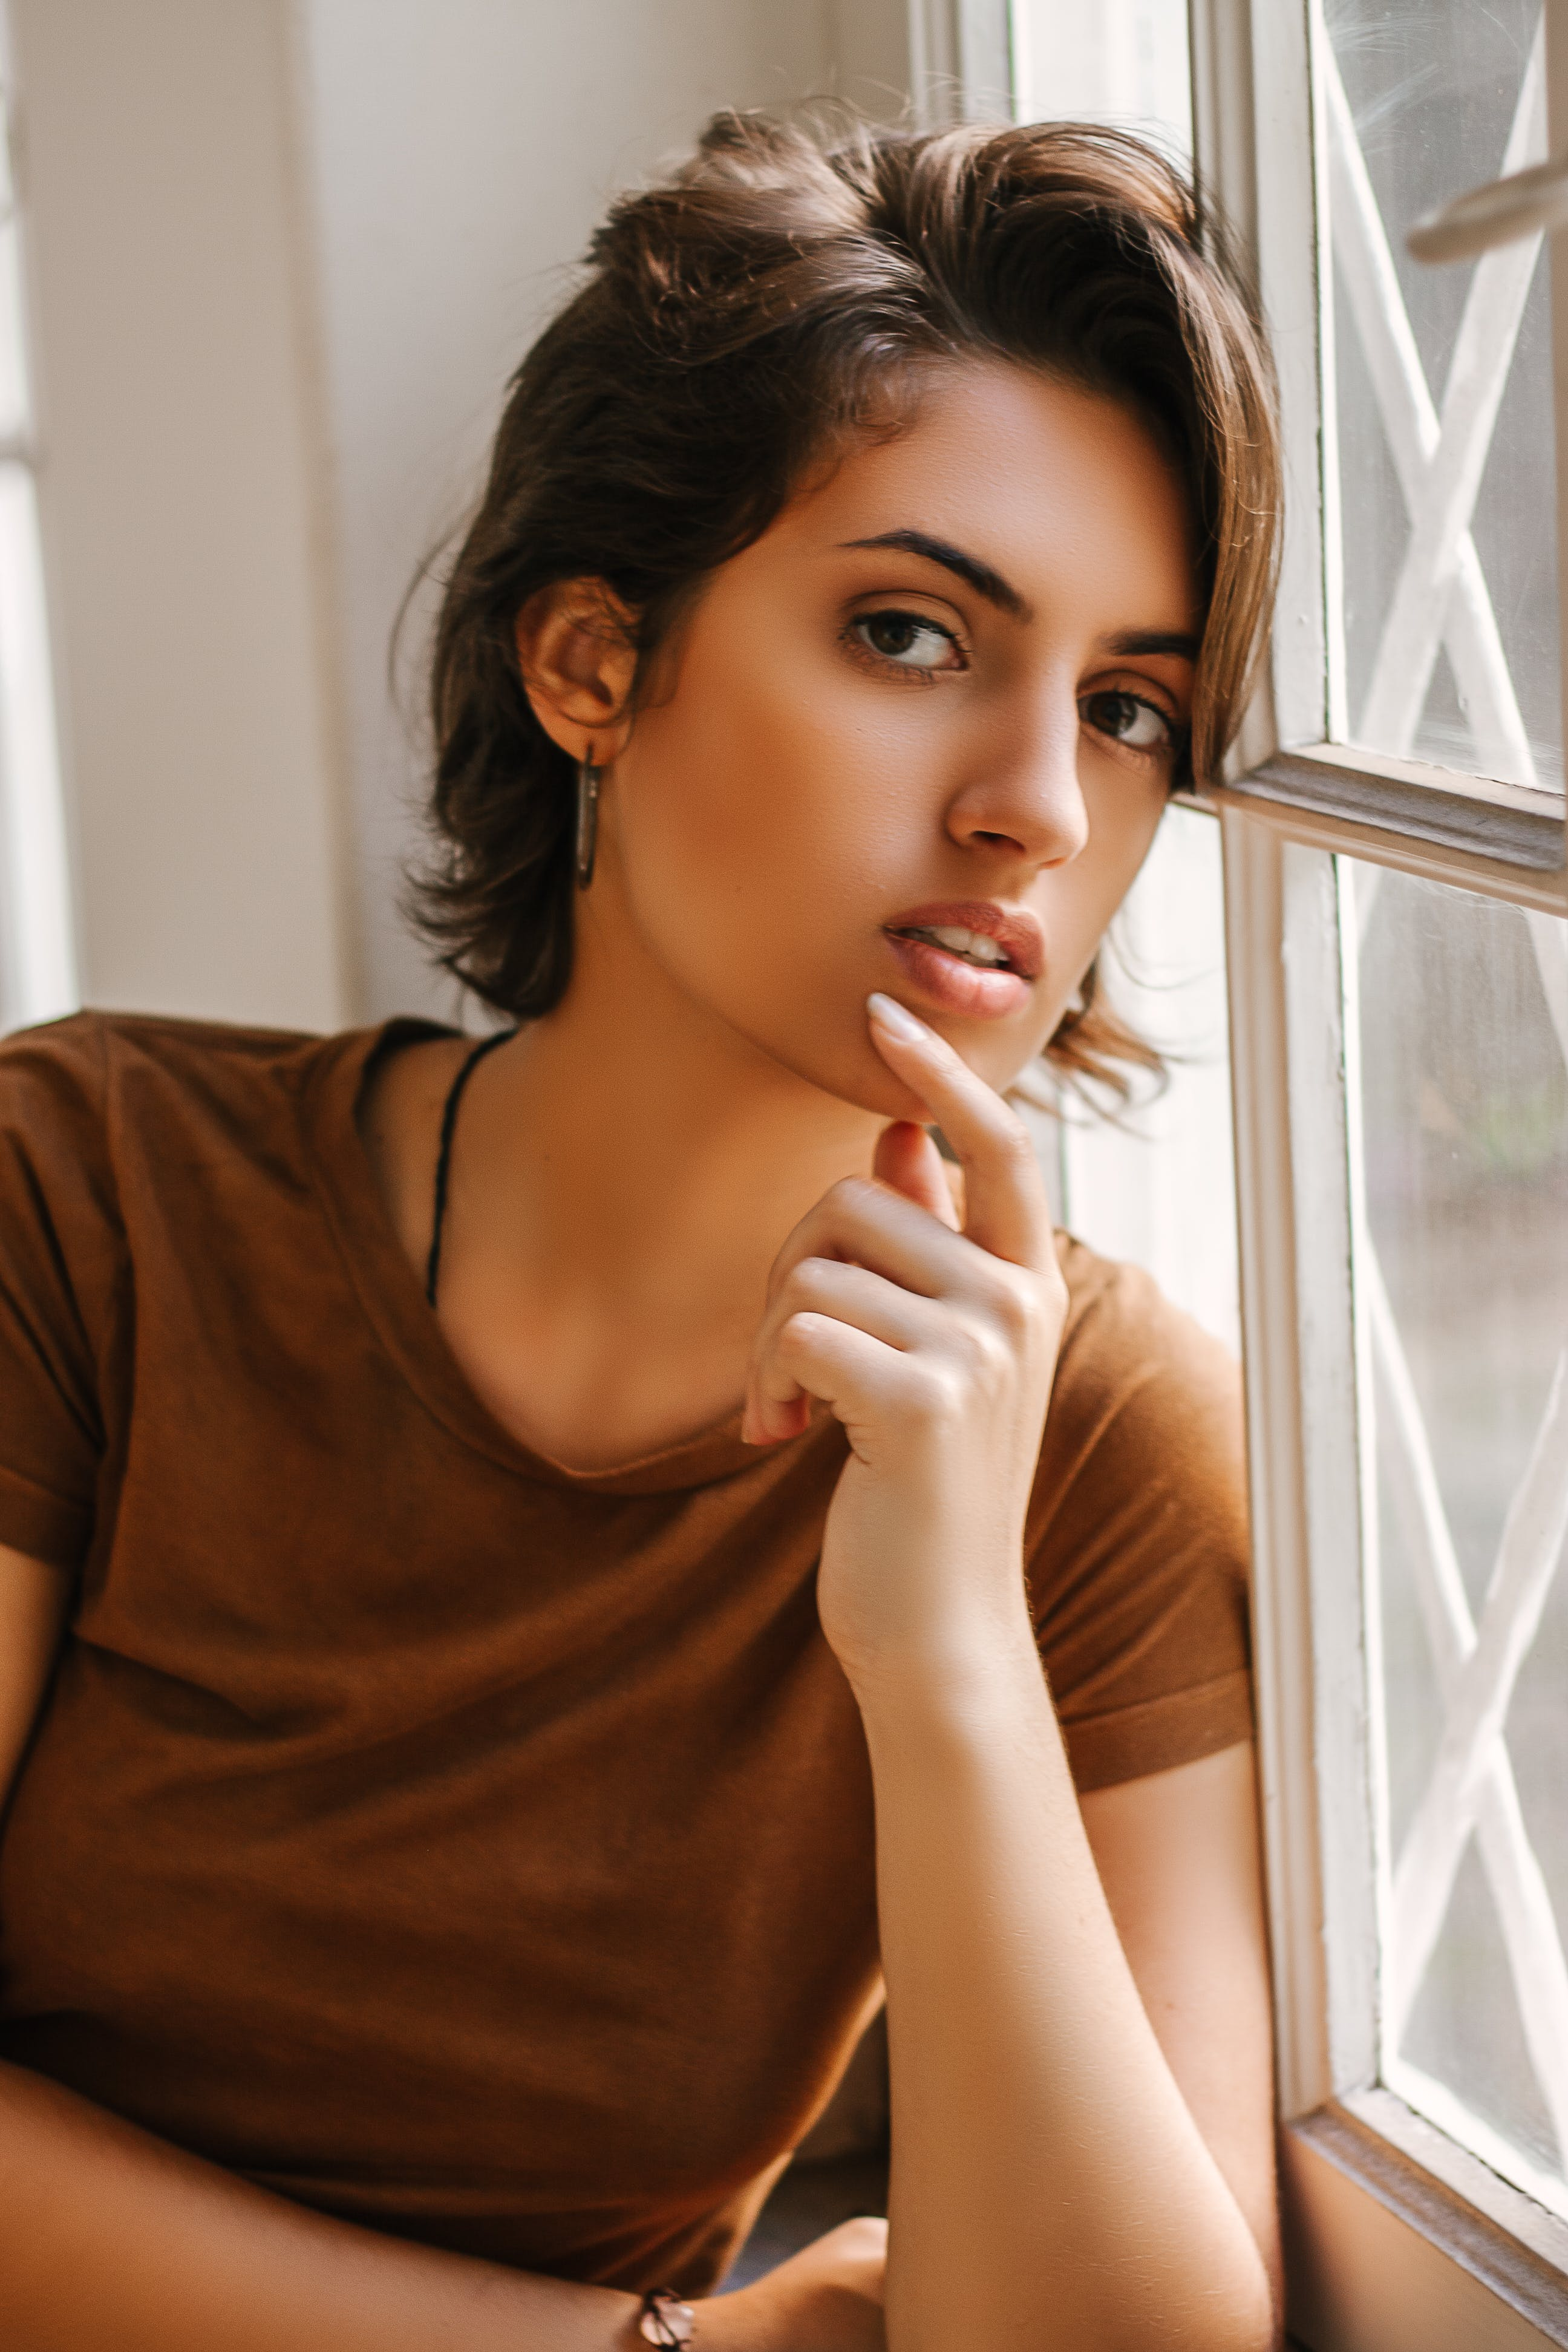 Close-up Photo of Woman Leaning on Window